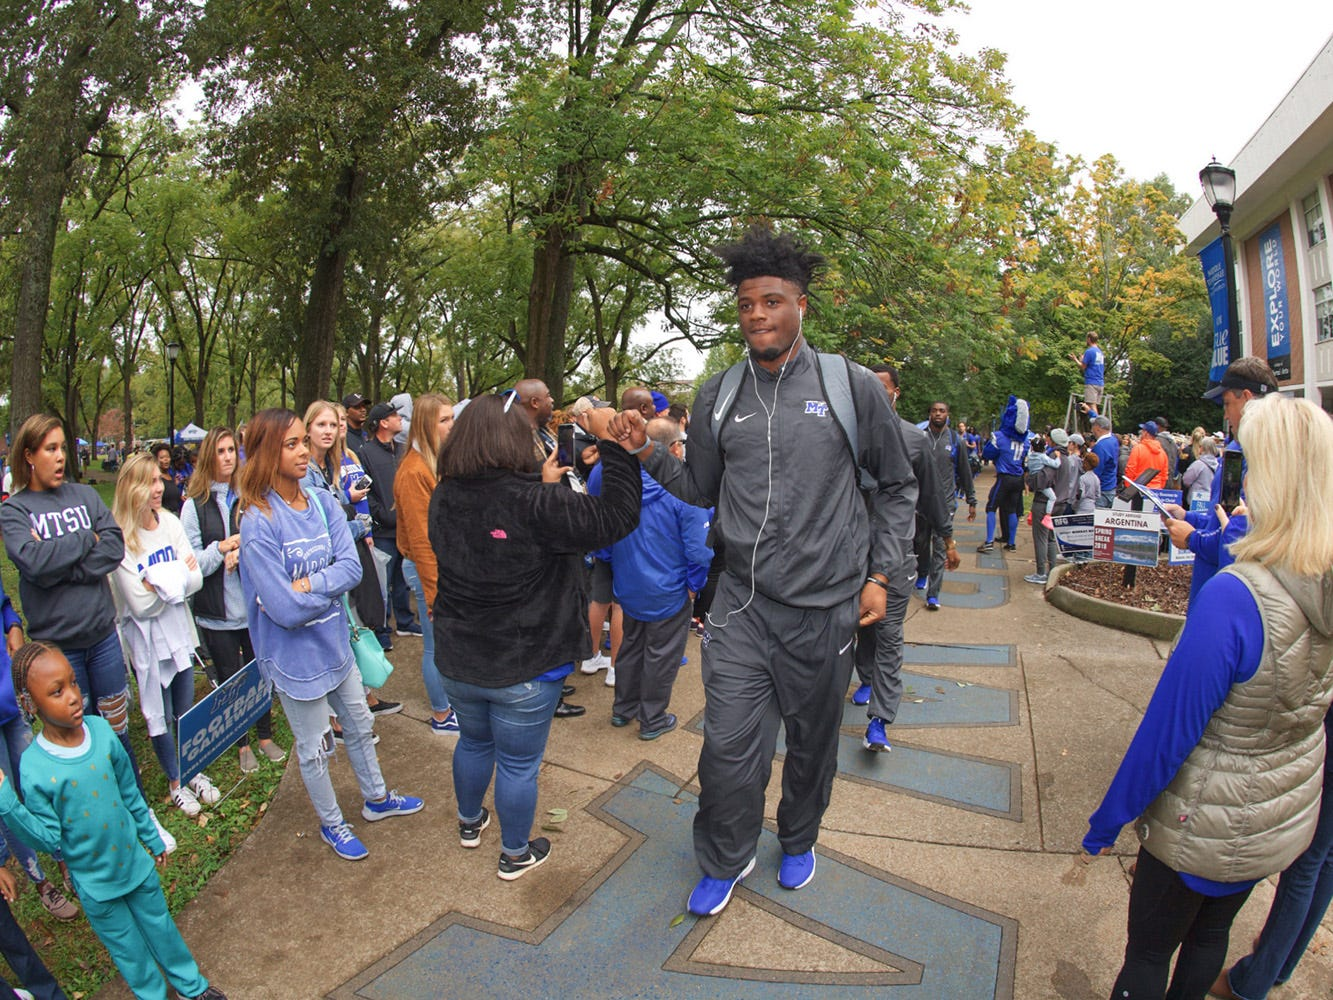 MTSU players participate in the Raider Walk during tailgating in The Grove during MTSU's Homecoming celebration on Oct. 20, 2018.